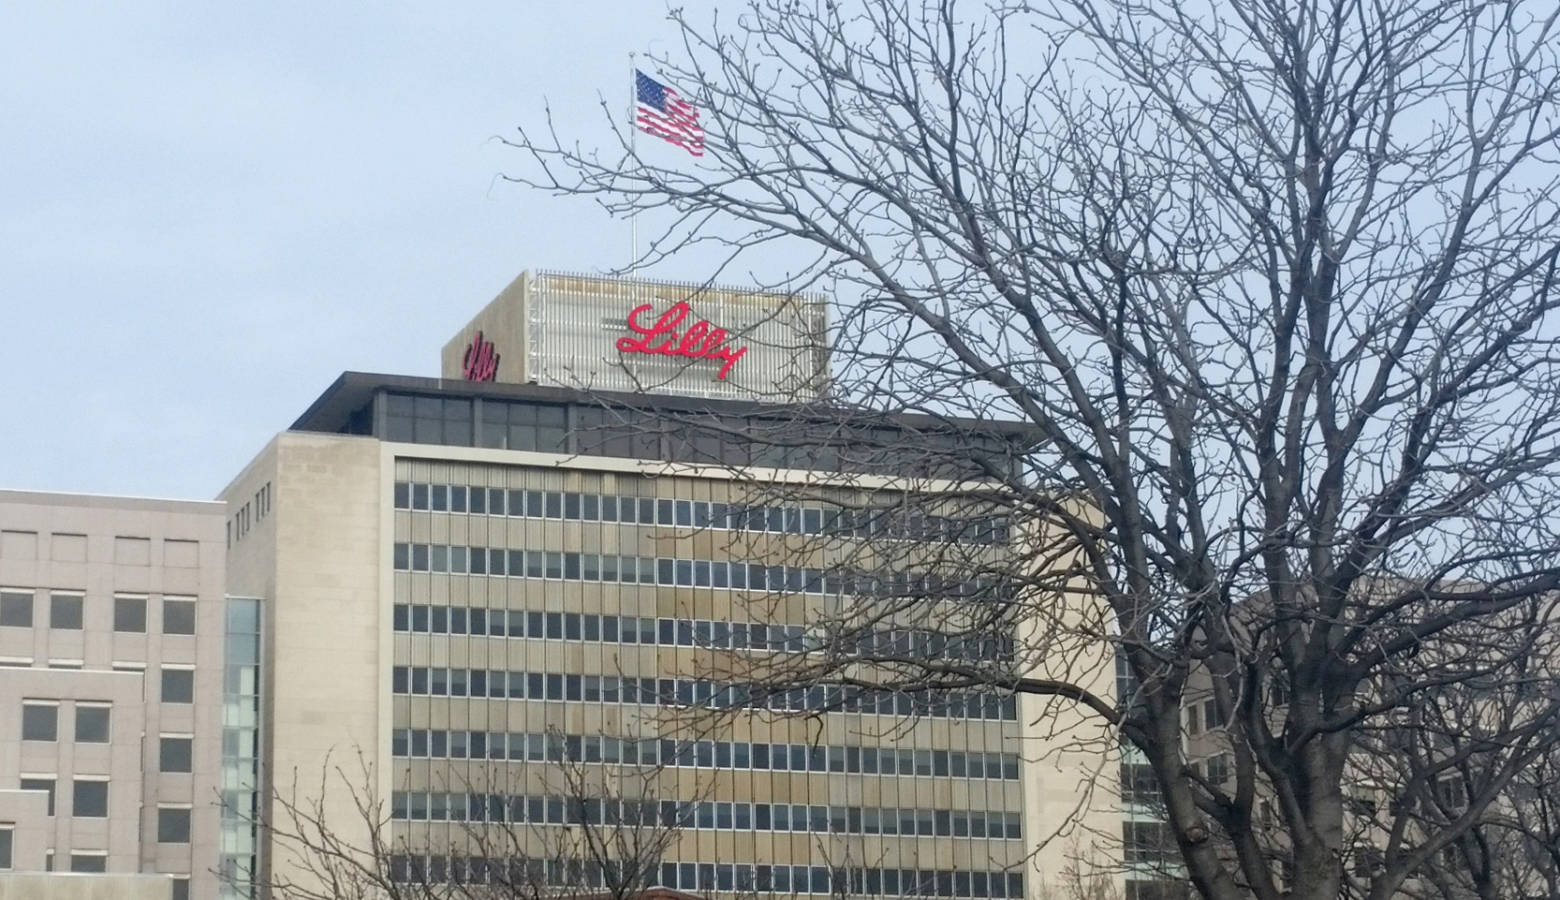 Eli Lilly Corporate Headquarters in Indianapolis